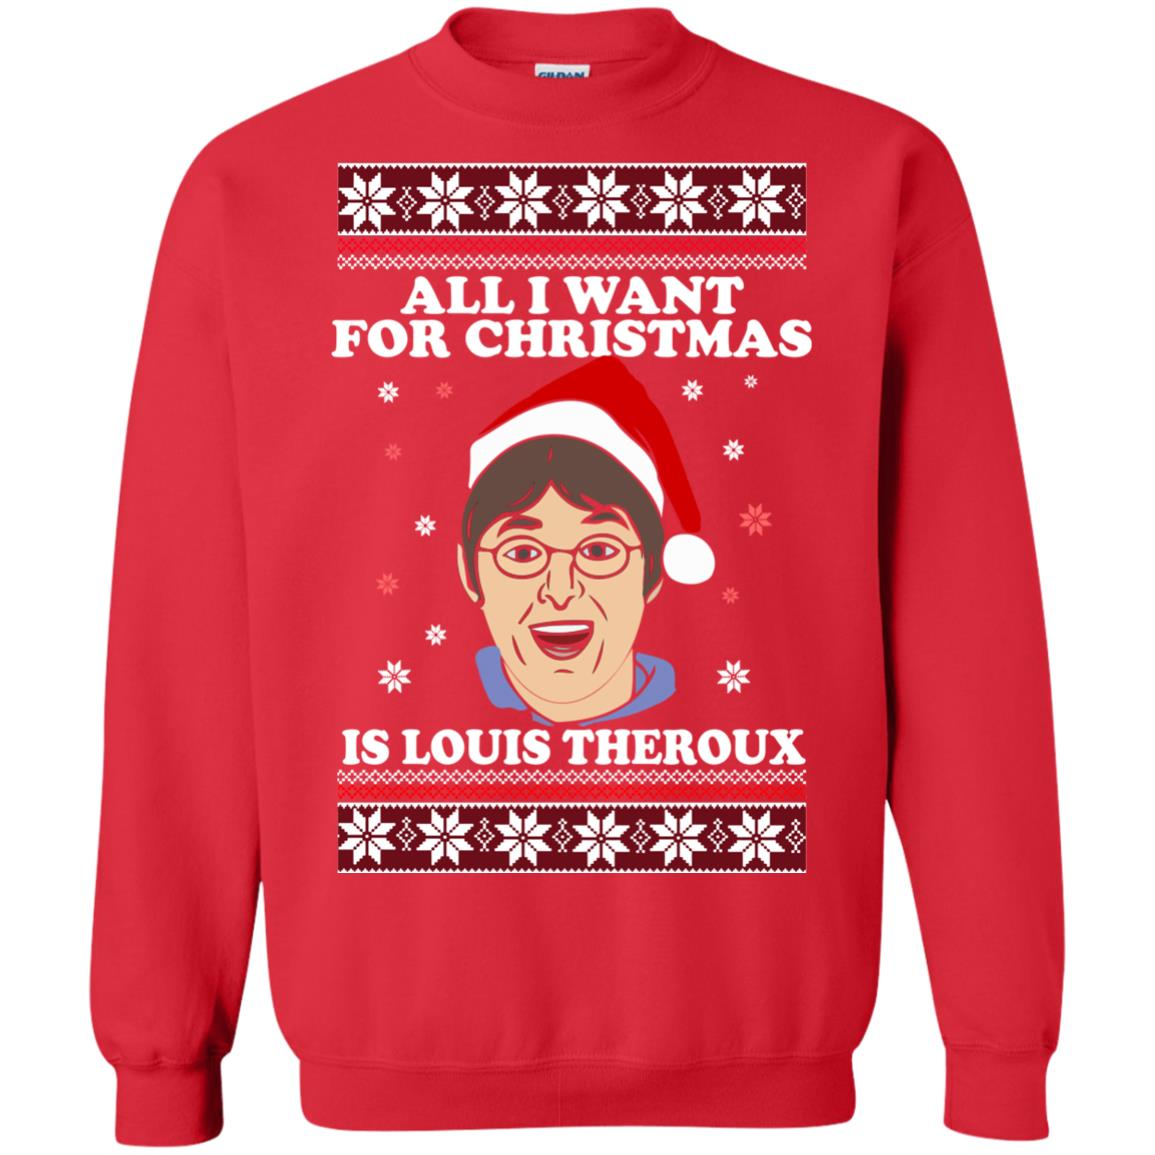 af310ba9bf91 All I want for Christmas IS Louis Theroux ugly Sweater shirt - image 2951  510x510